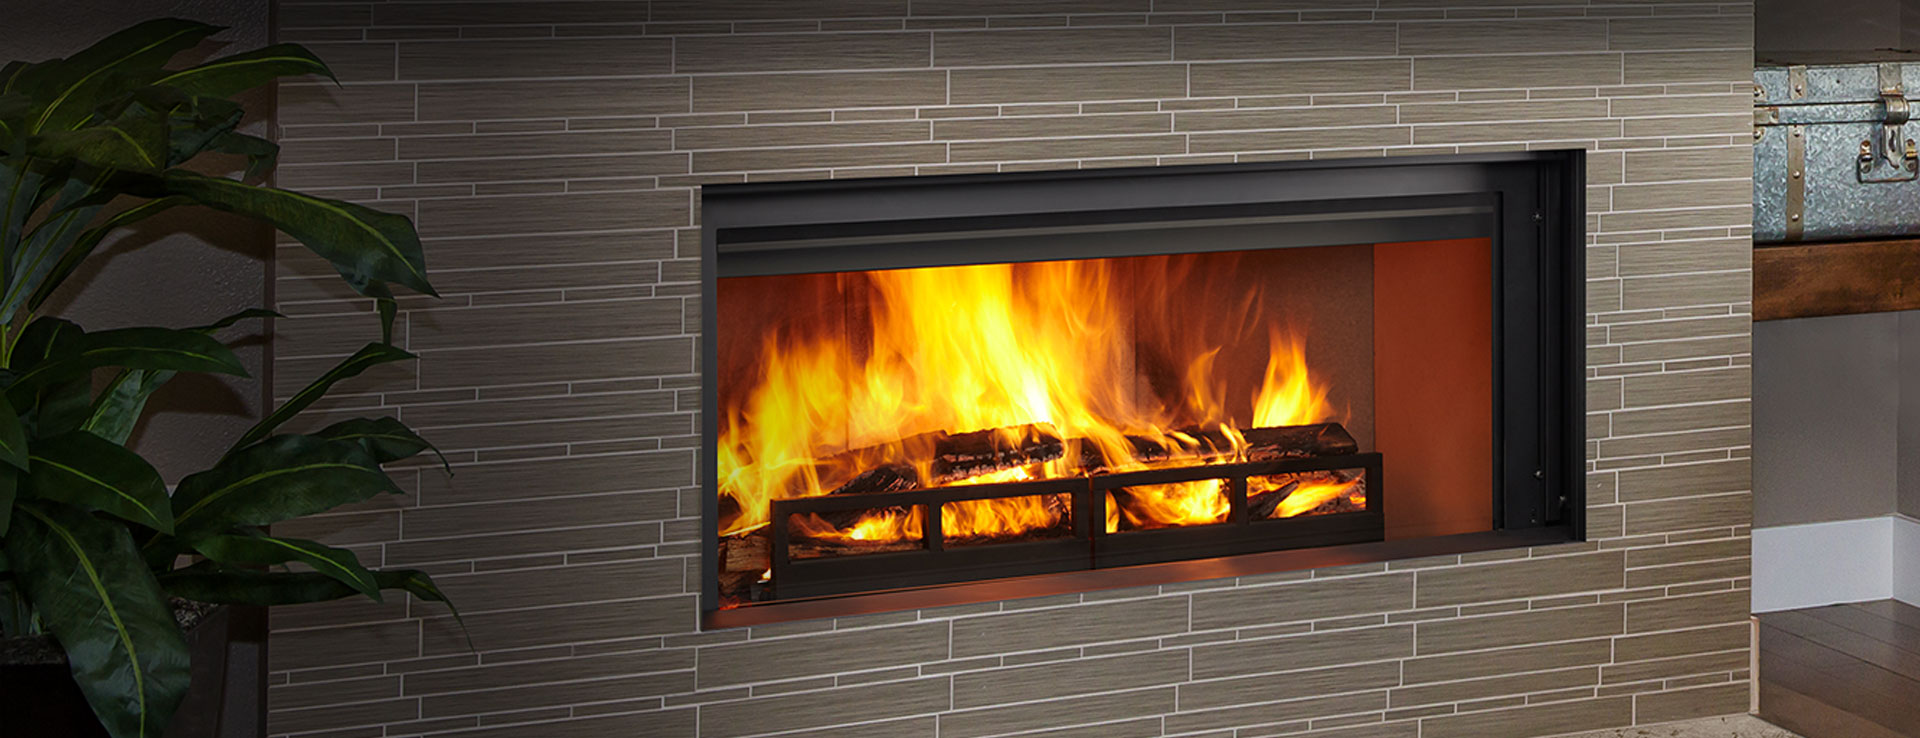 Simple Tips for Maintaining a WoodBurning Fireplace